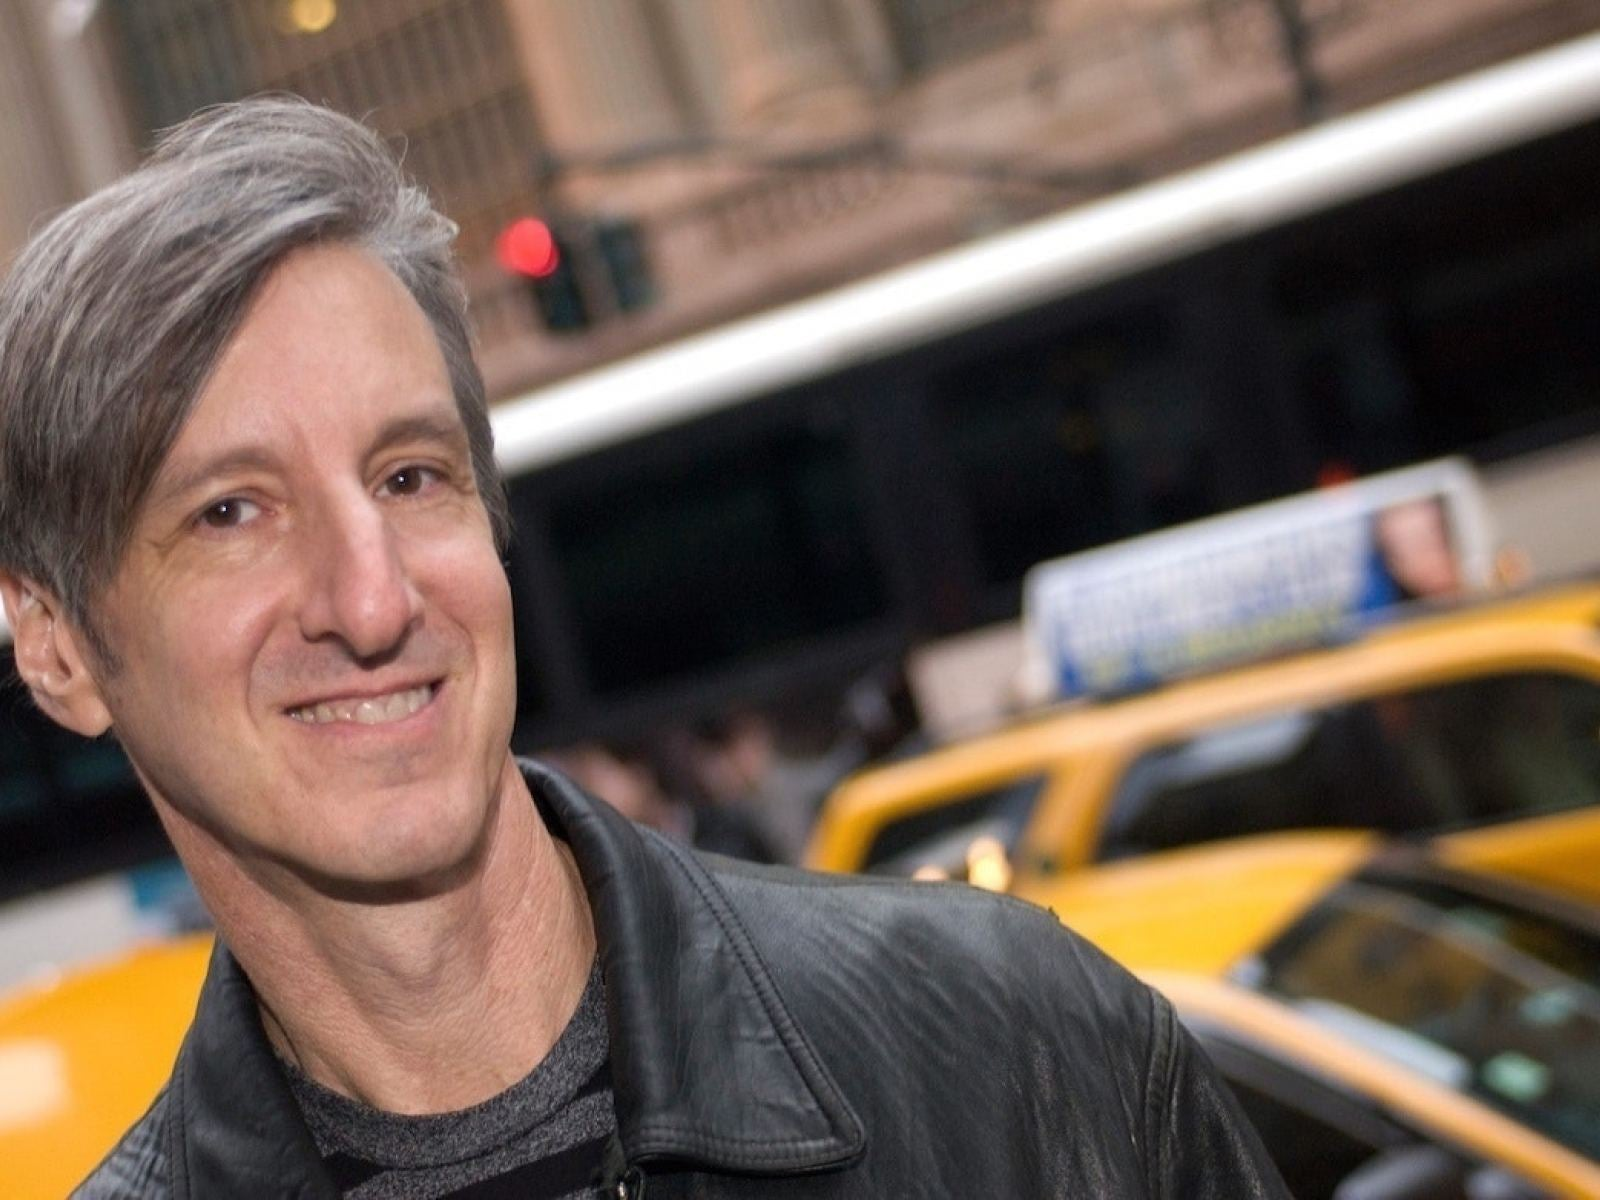 Main image for event titled Andy Borowitz